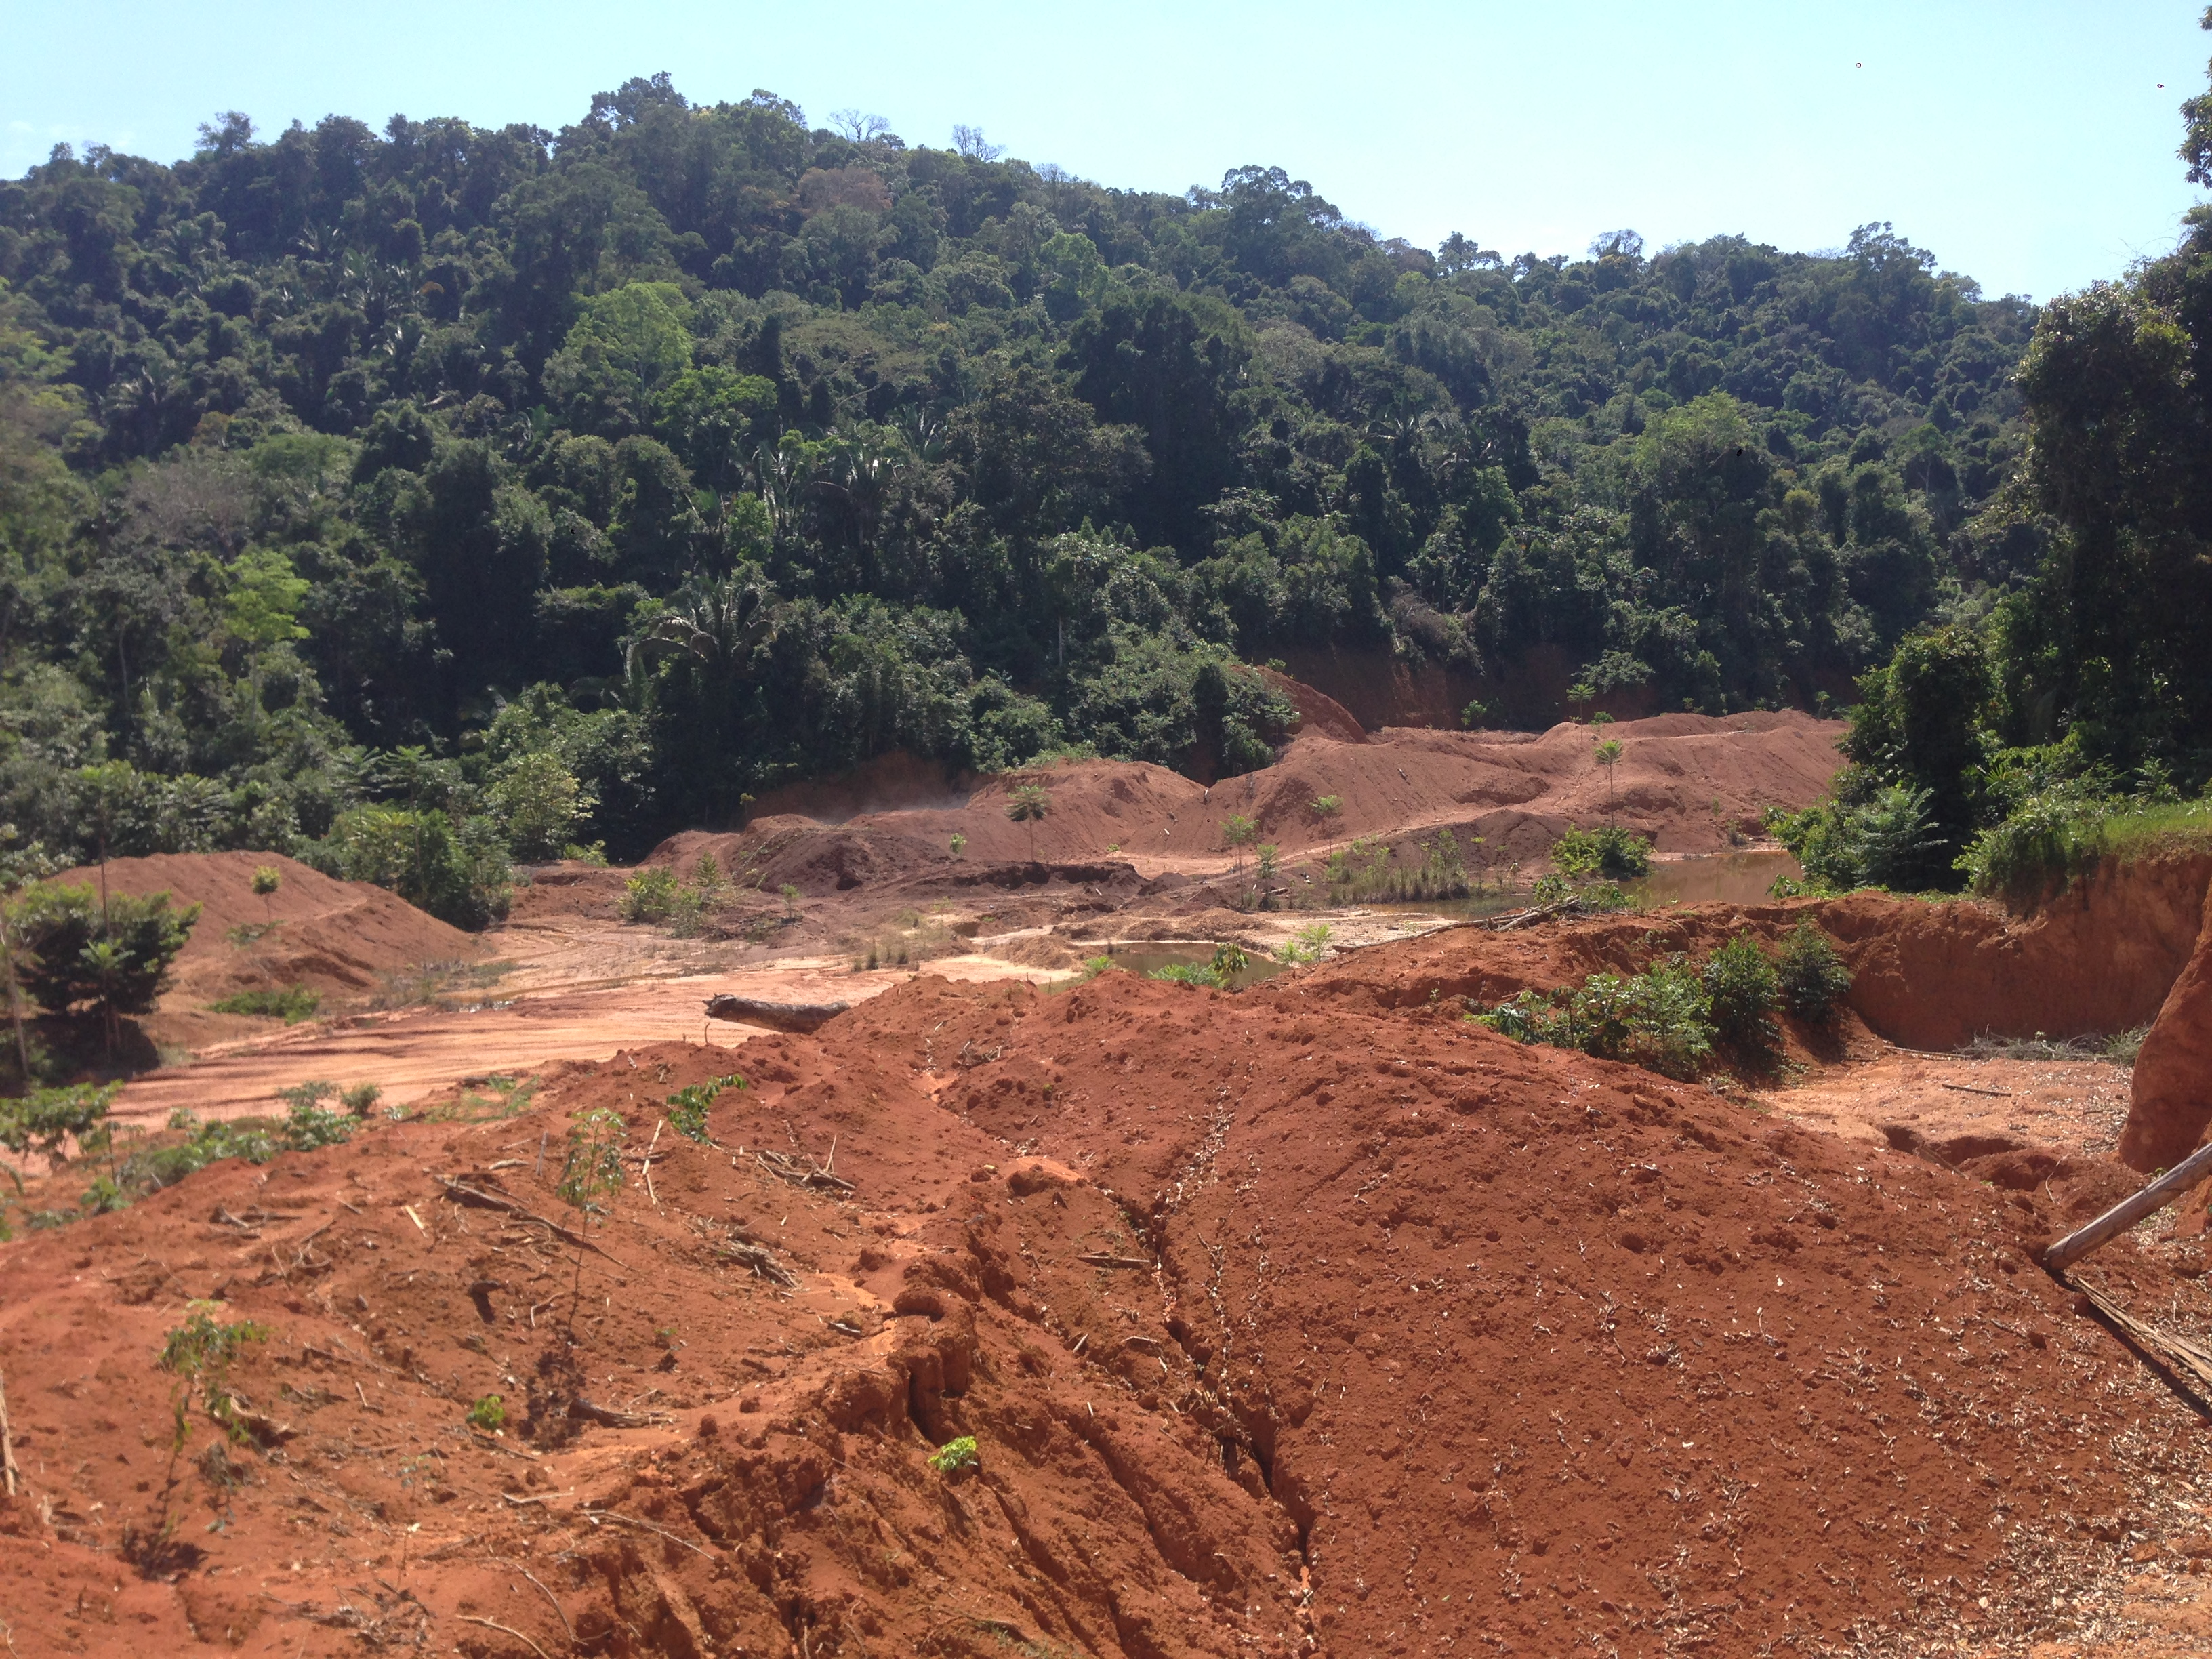 An illegal mining site on Munduruku indigenous land in Pará state, in the Amazon region. Image by Sam Cowie